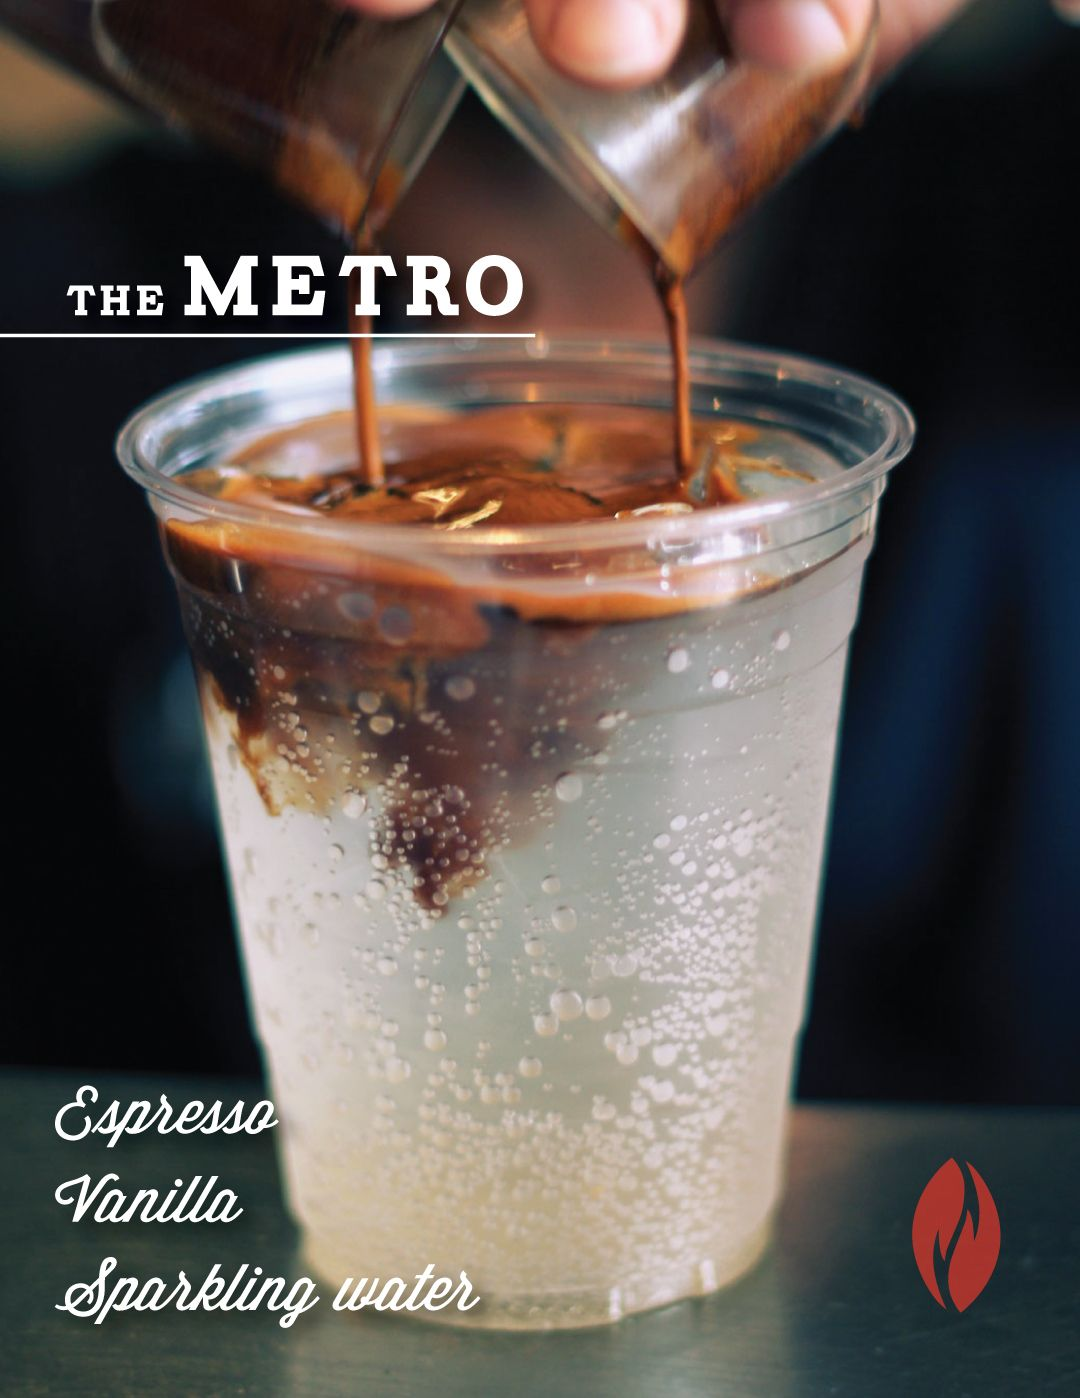 Americano Coffee To Go Introducing The Metro An Uplifting Subtly Sweet And